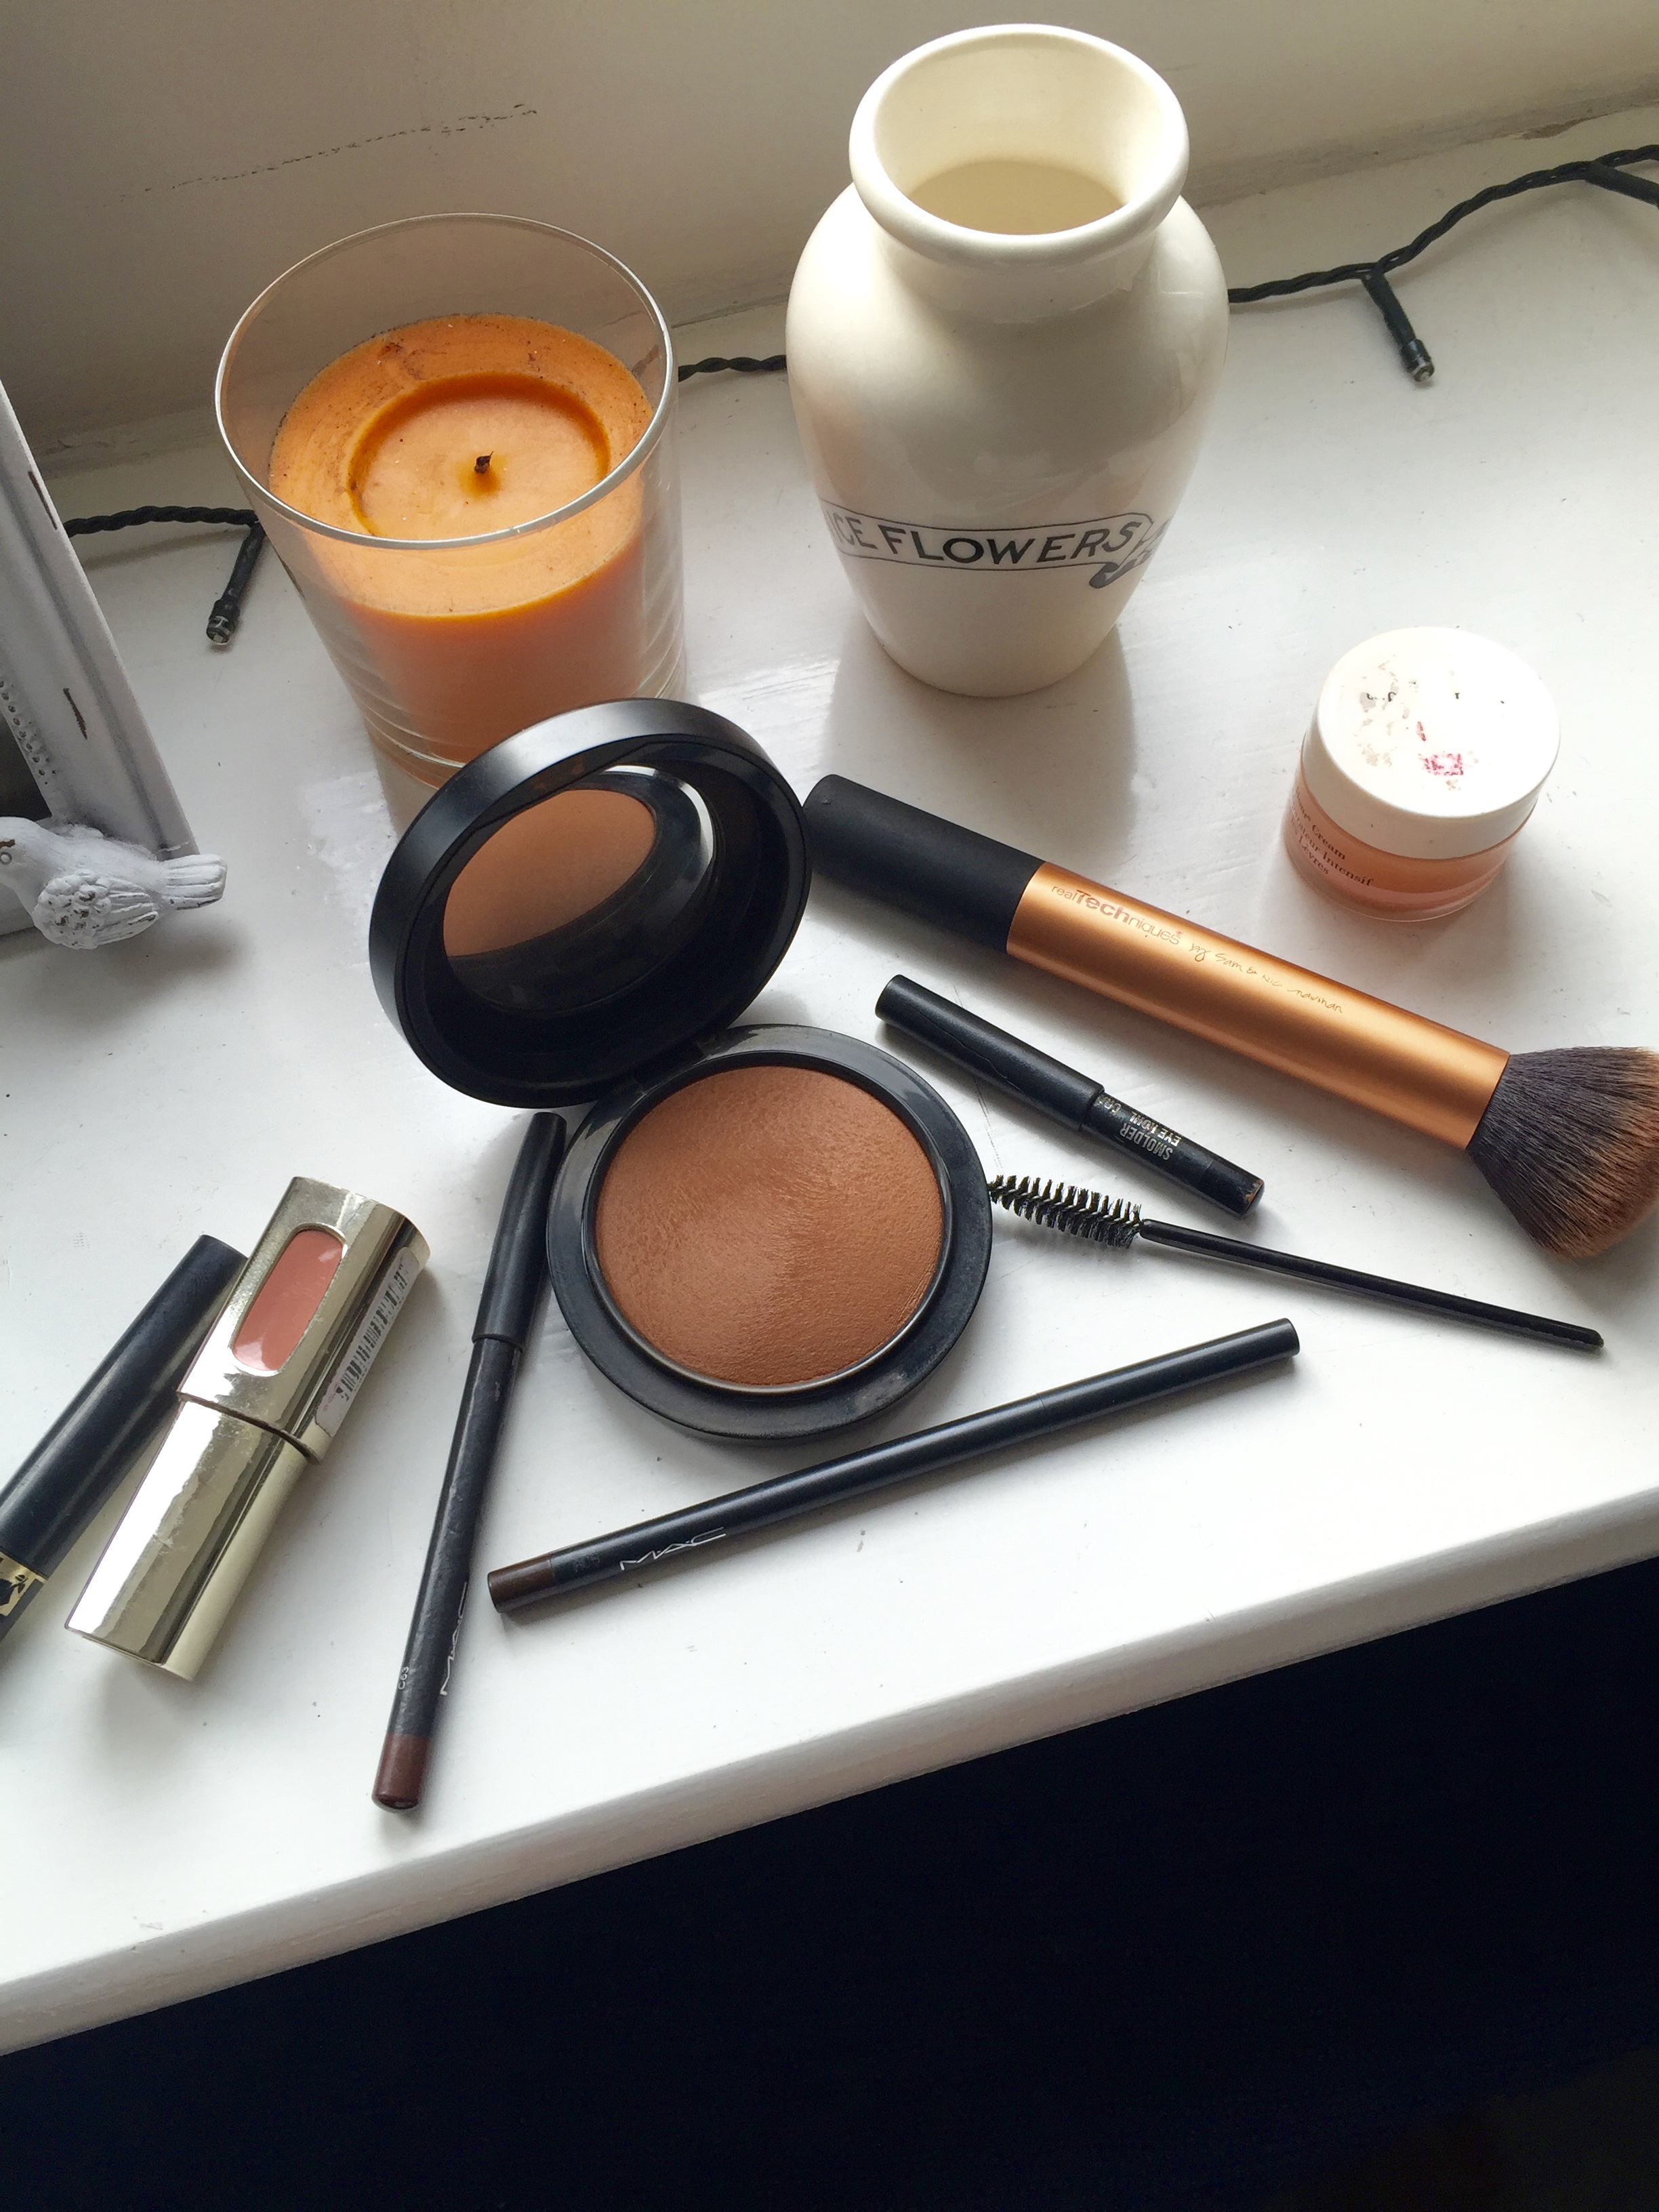 My On the Go Beauty Essentials